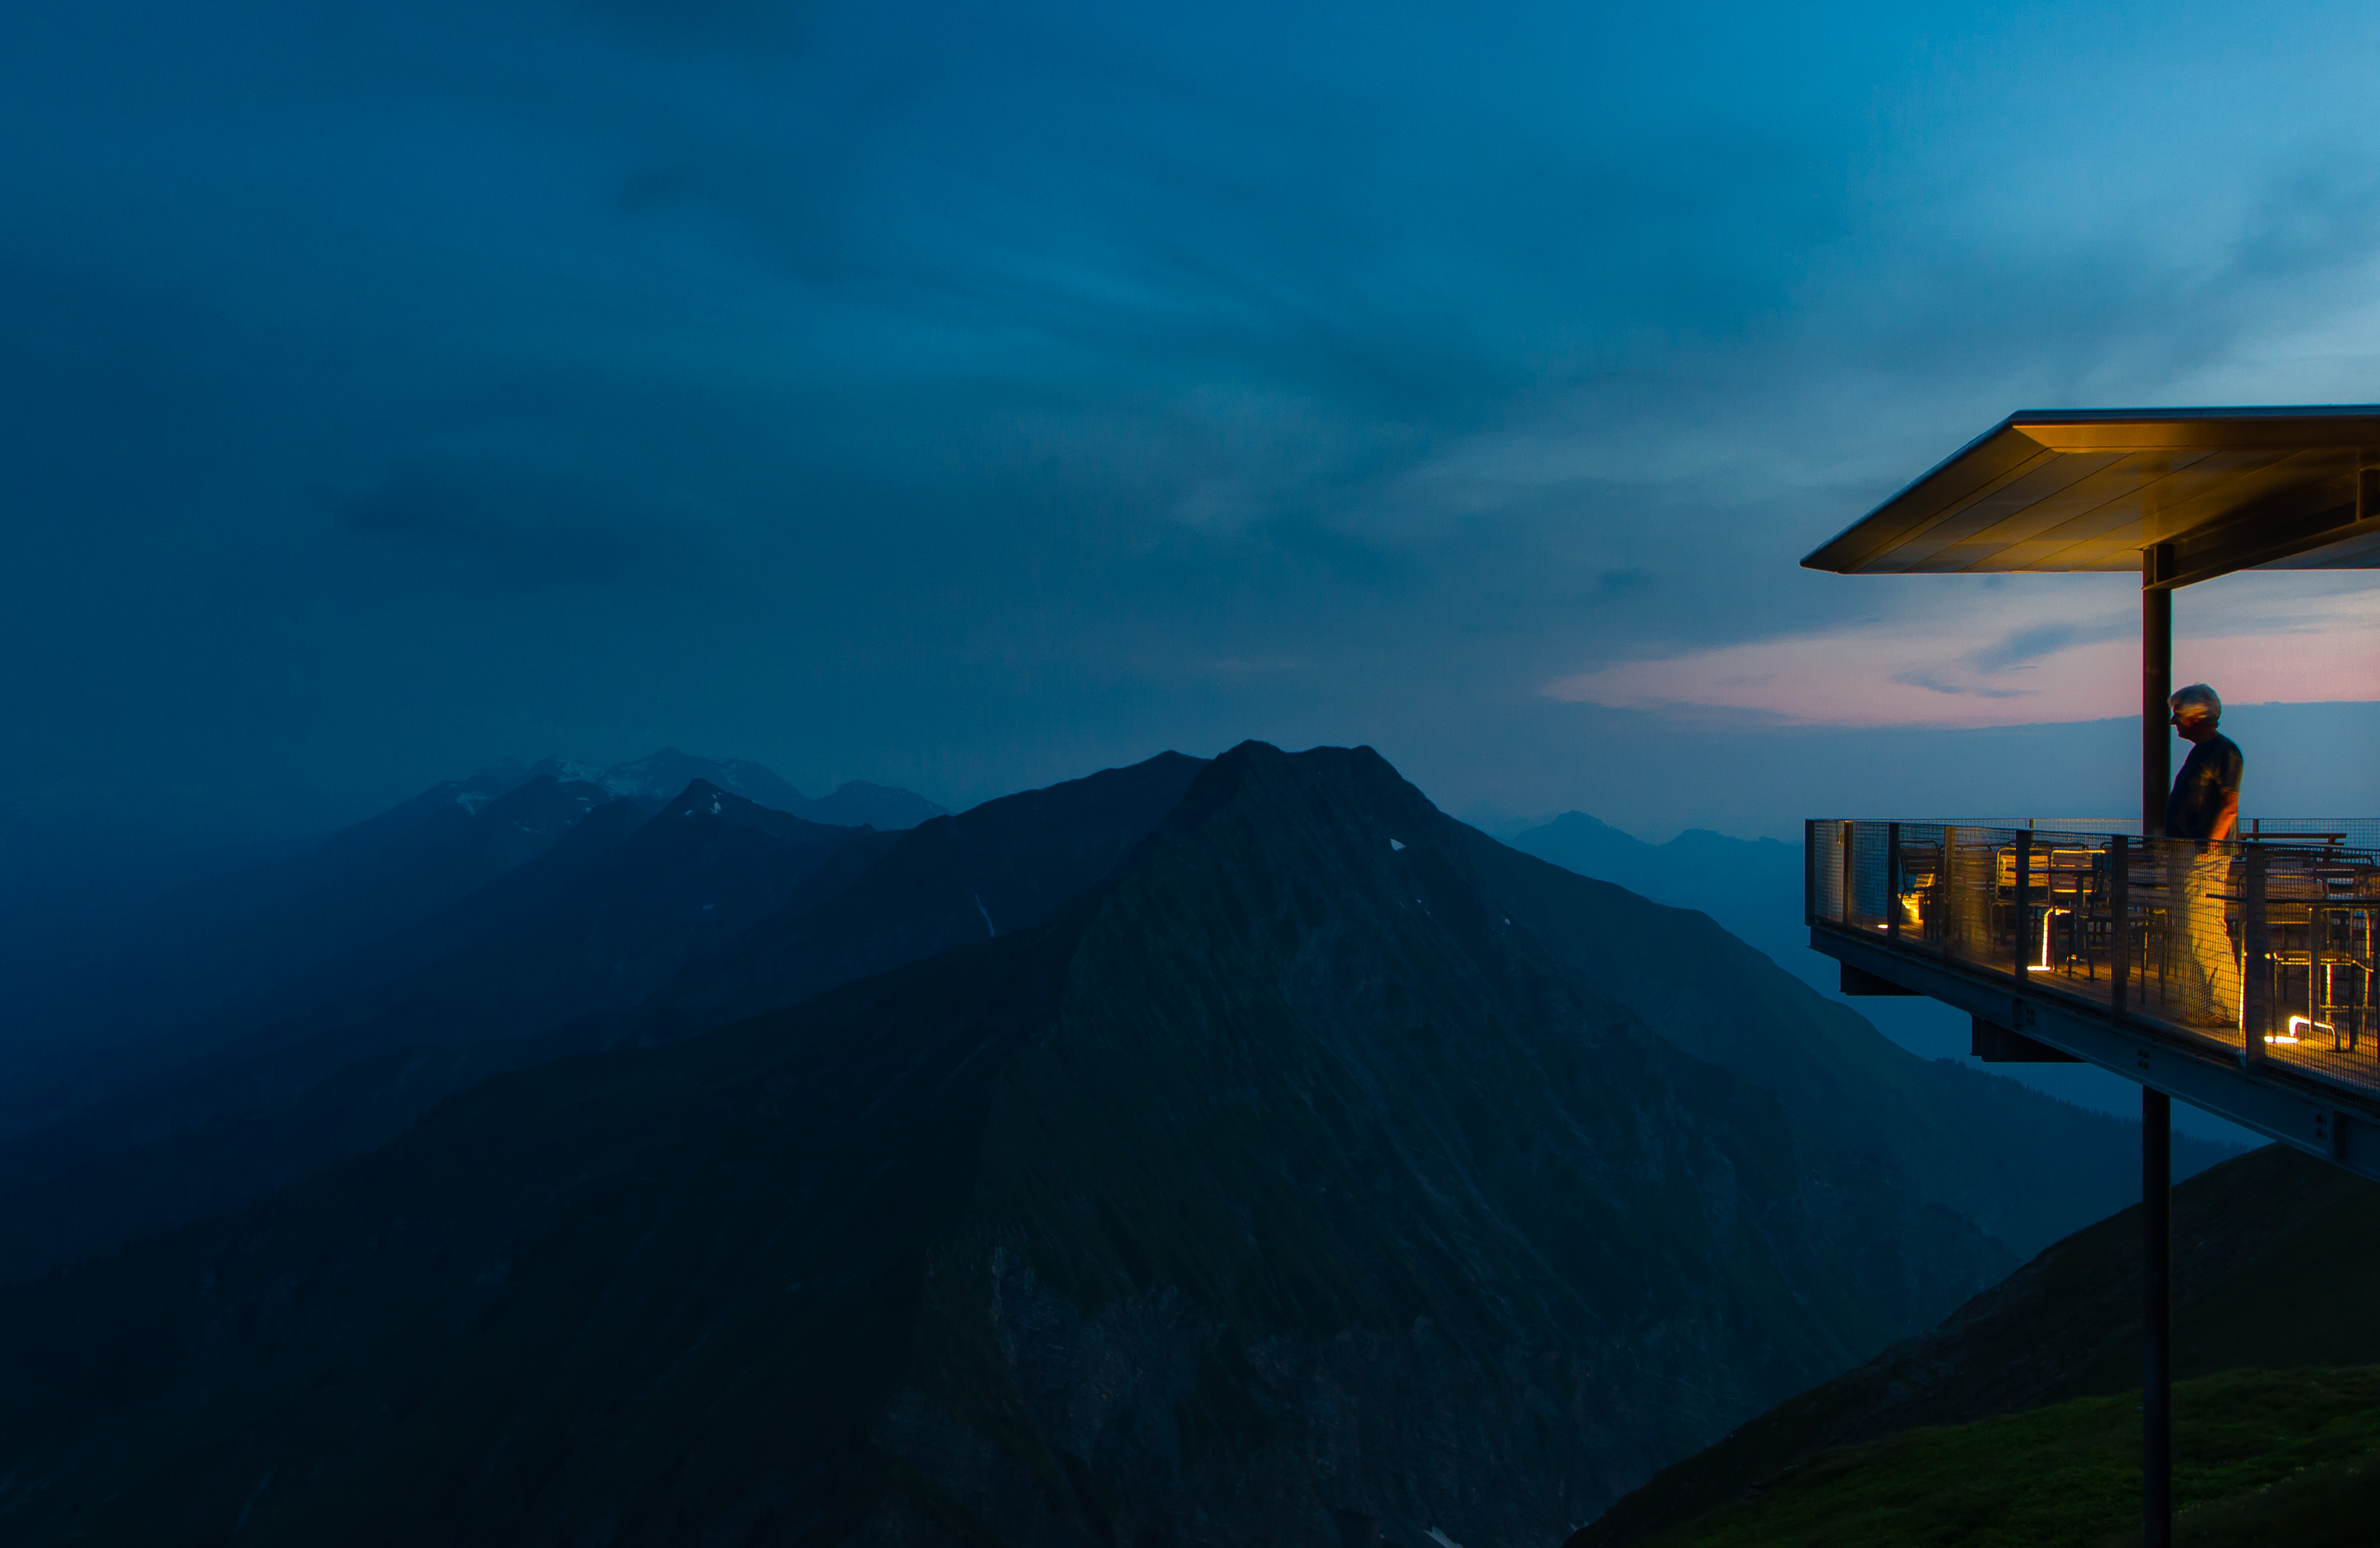 Elevation of sigriswil switzerland maplogs for 15567 canton ridge terrace